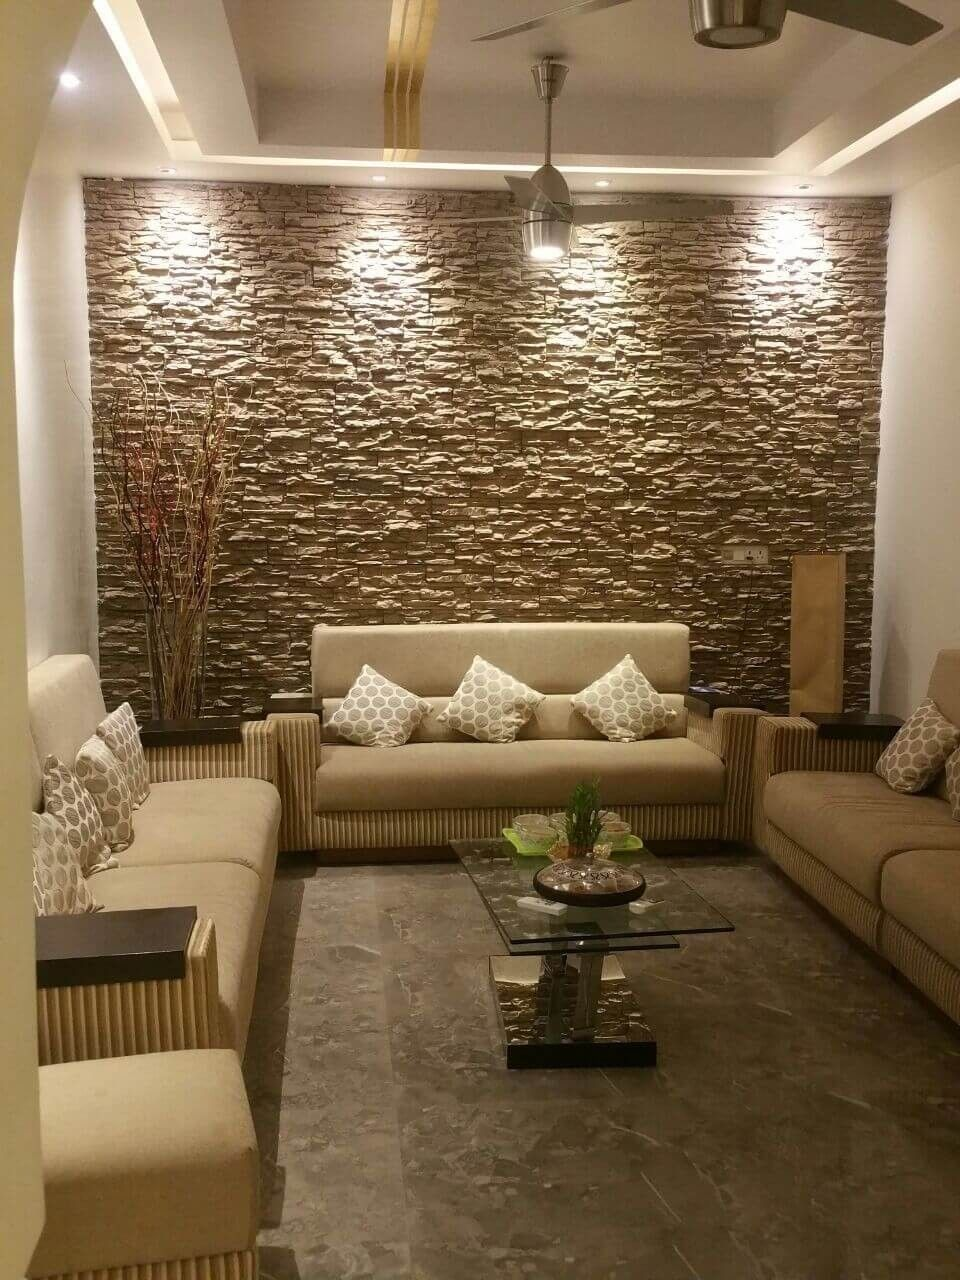 Amazing Wall Decorating Ideas With Stones Living Room Design Modern Stone Wall Interior Design Interior Wall Design